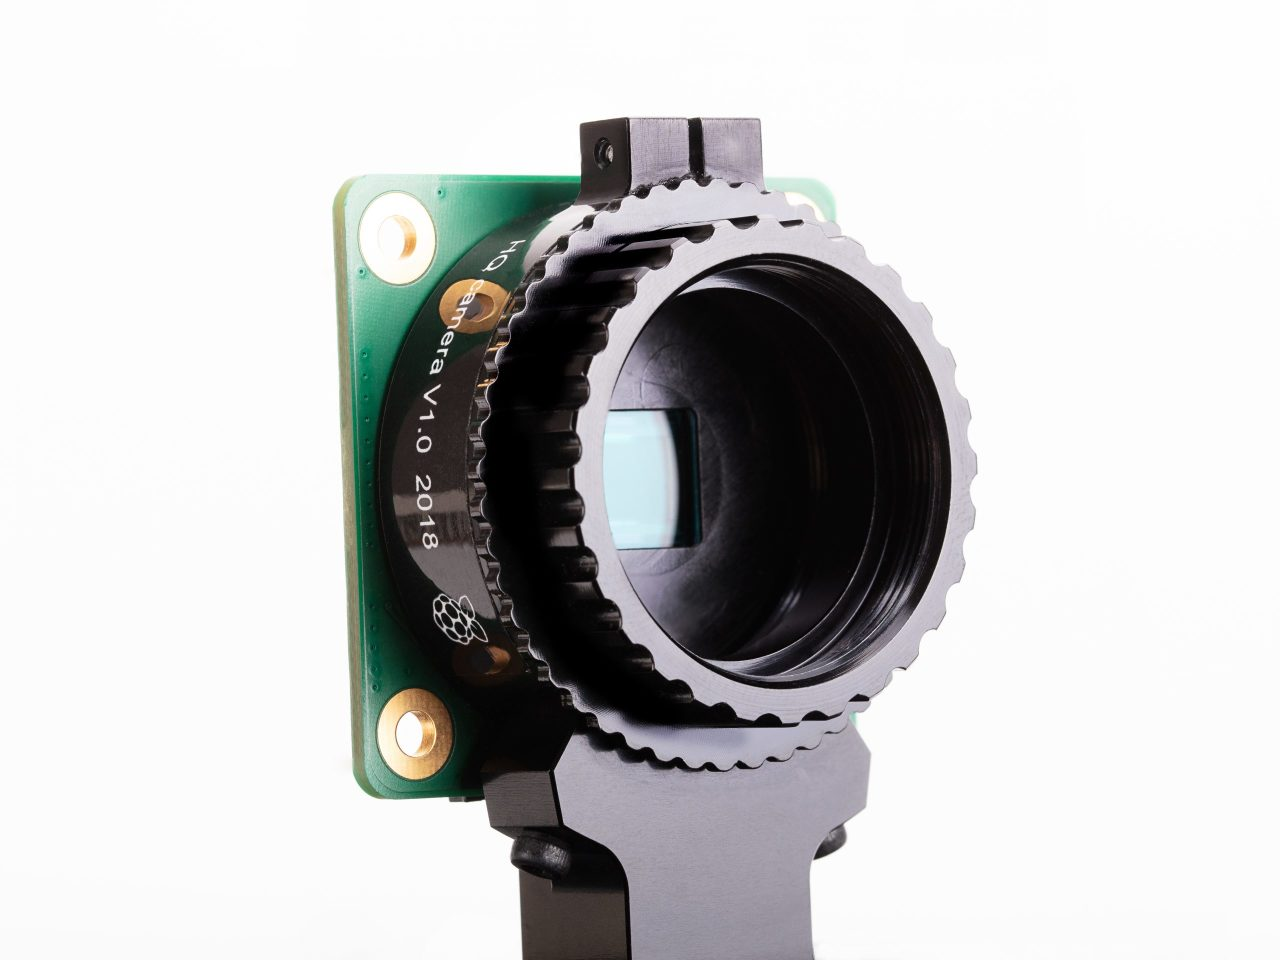 The Raspberry Pi High Quality Camera features a 12.3-MP sensor and interchangeable lens mount with back-focus adjustment